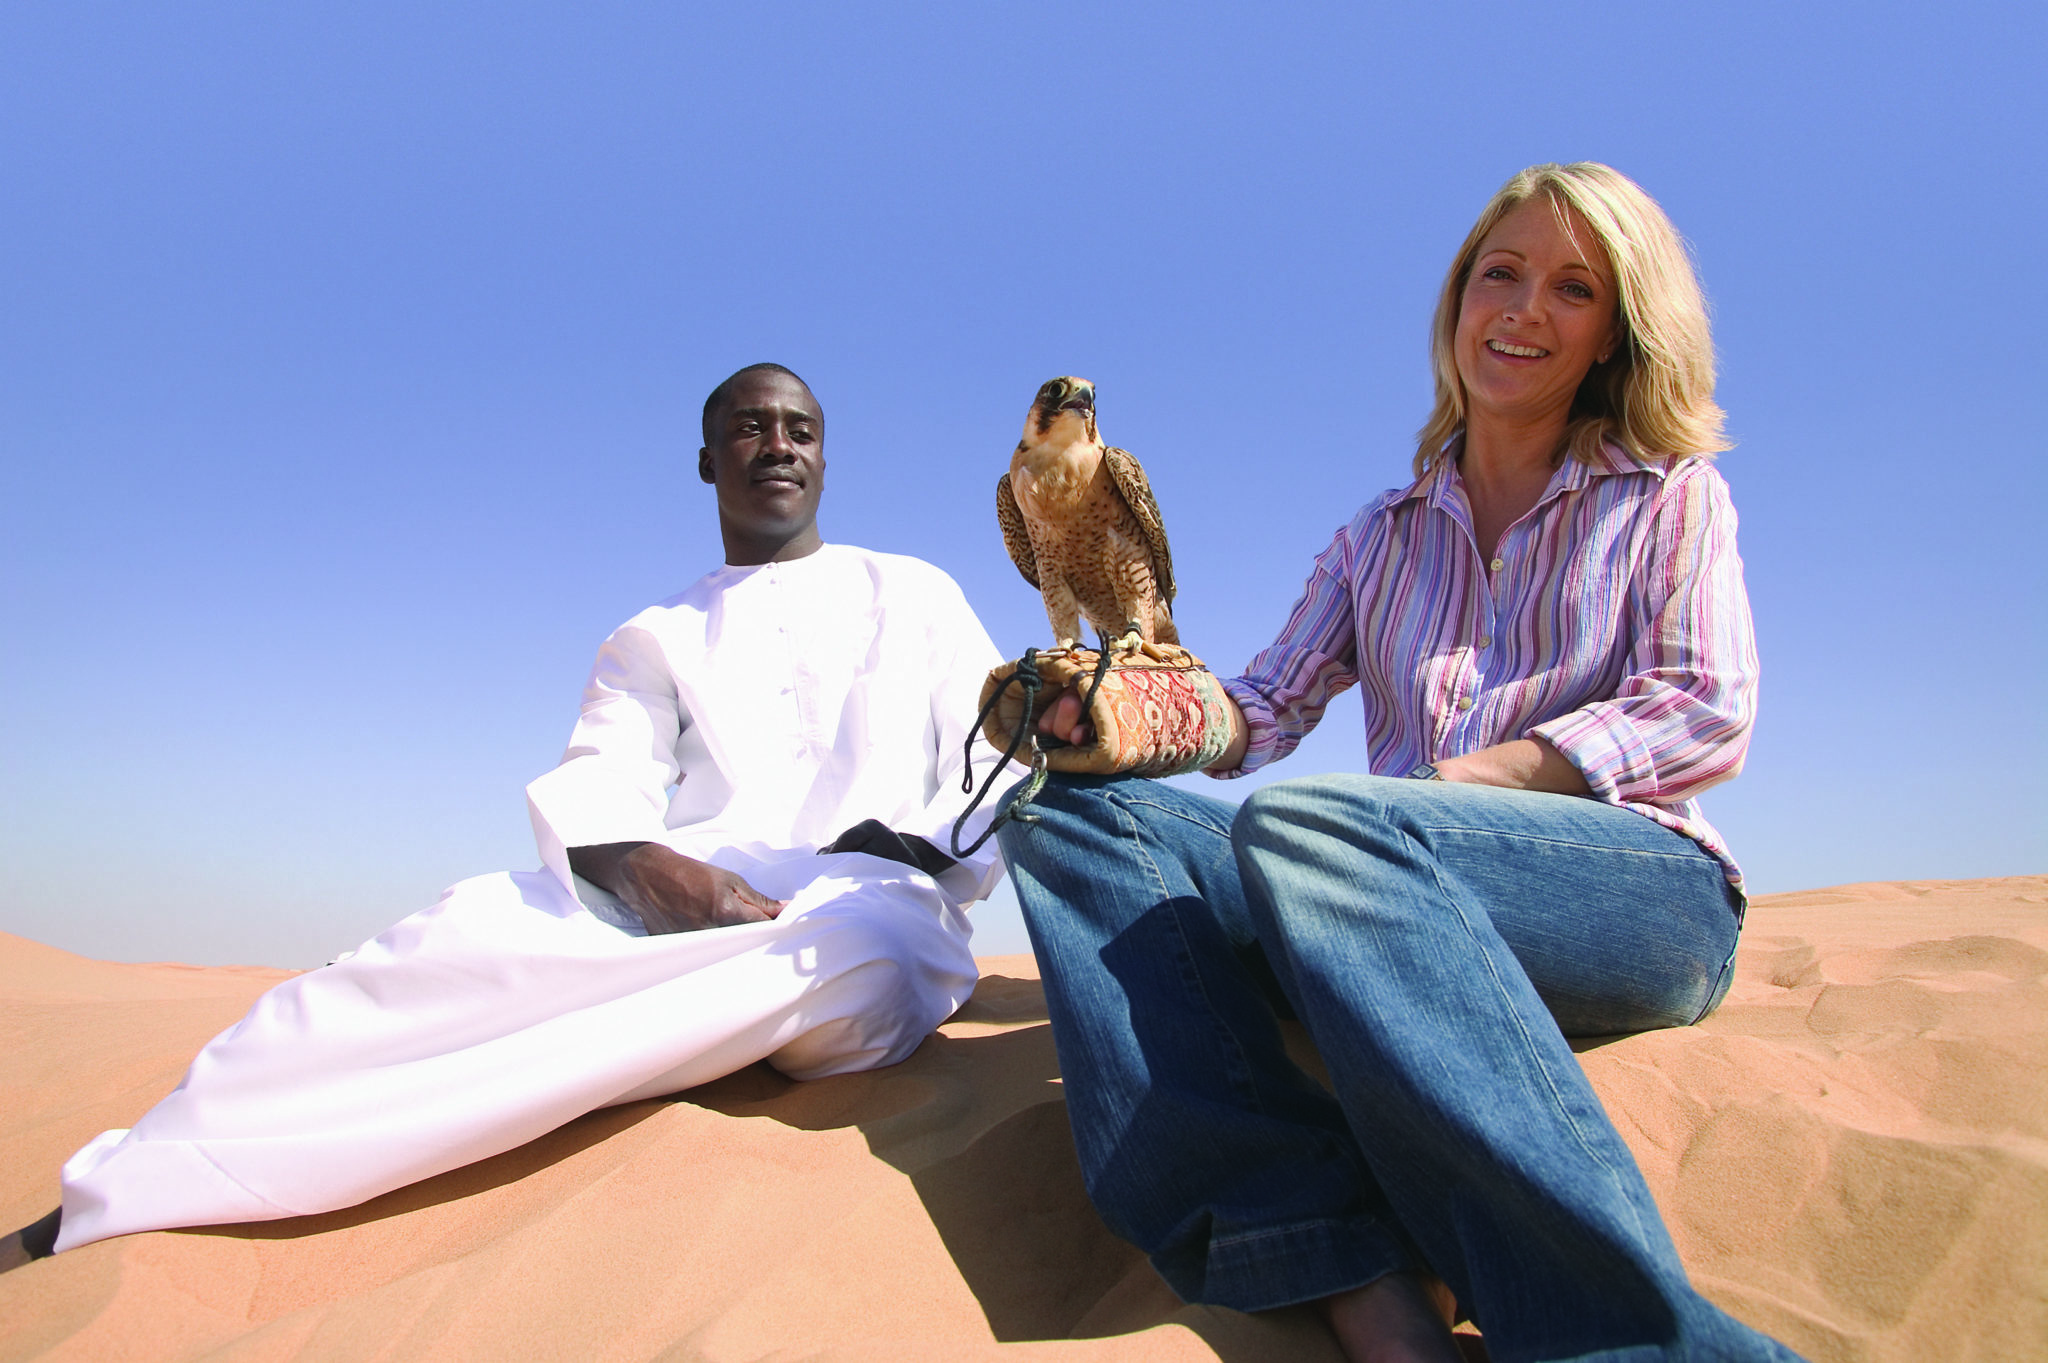 Muslim man in traditional dress and traveller with falcon on arm